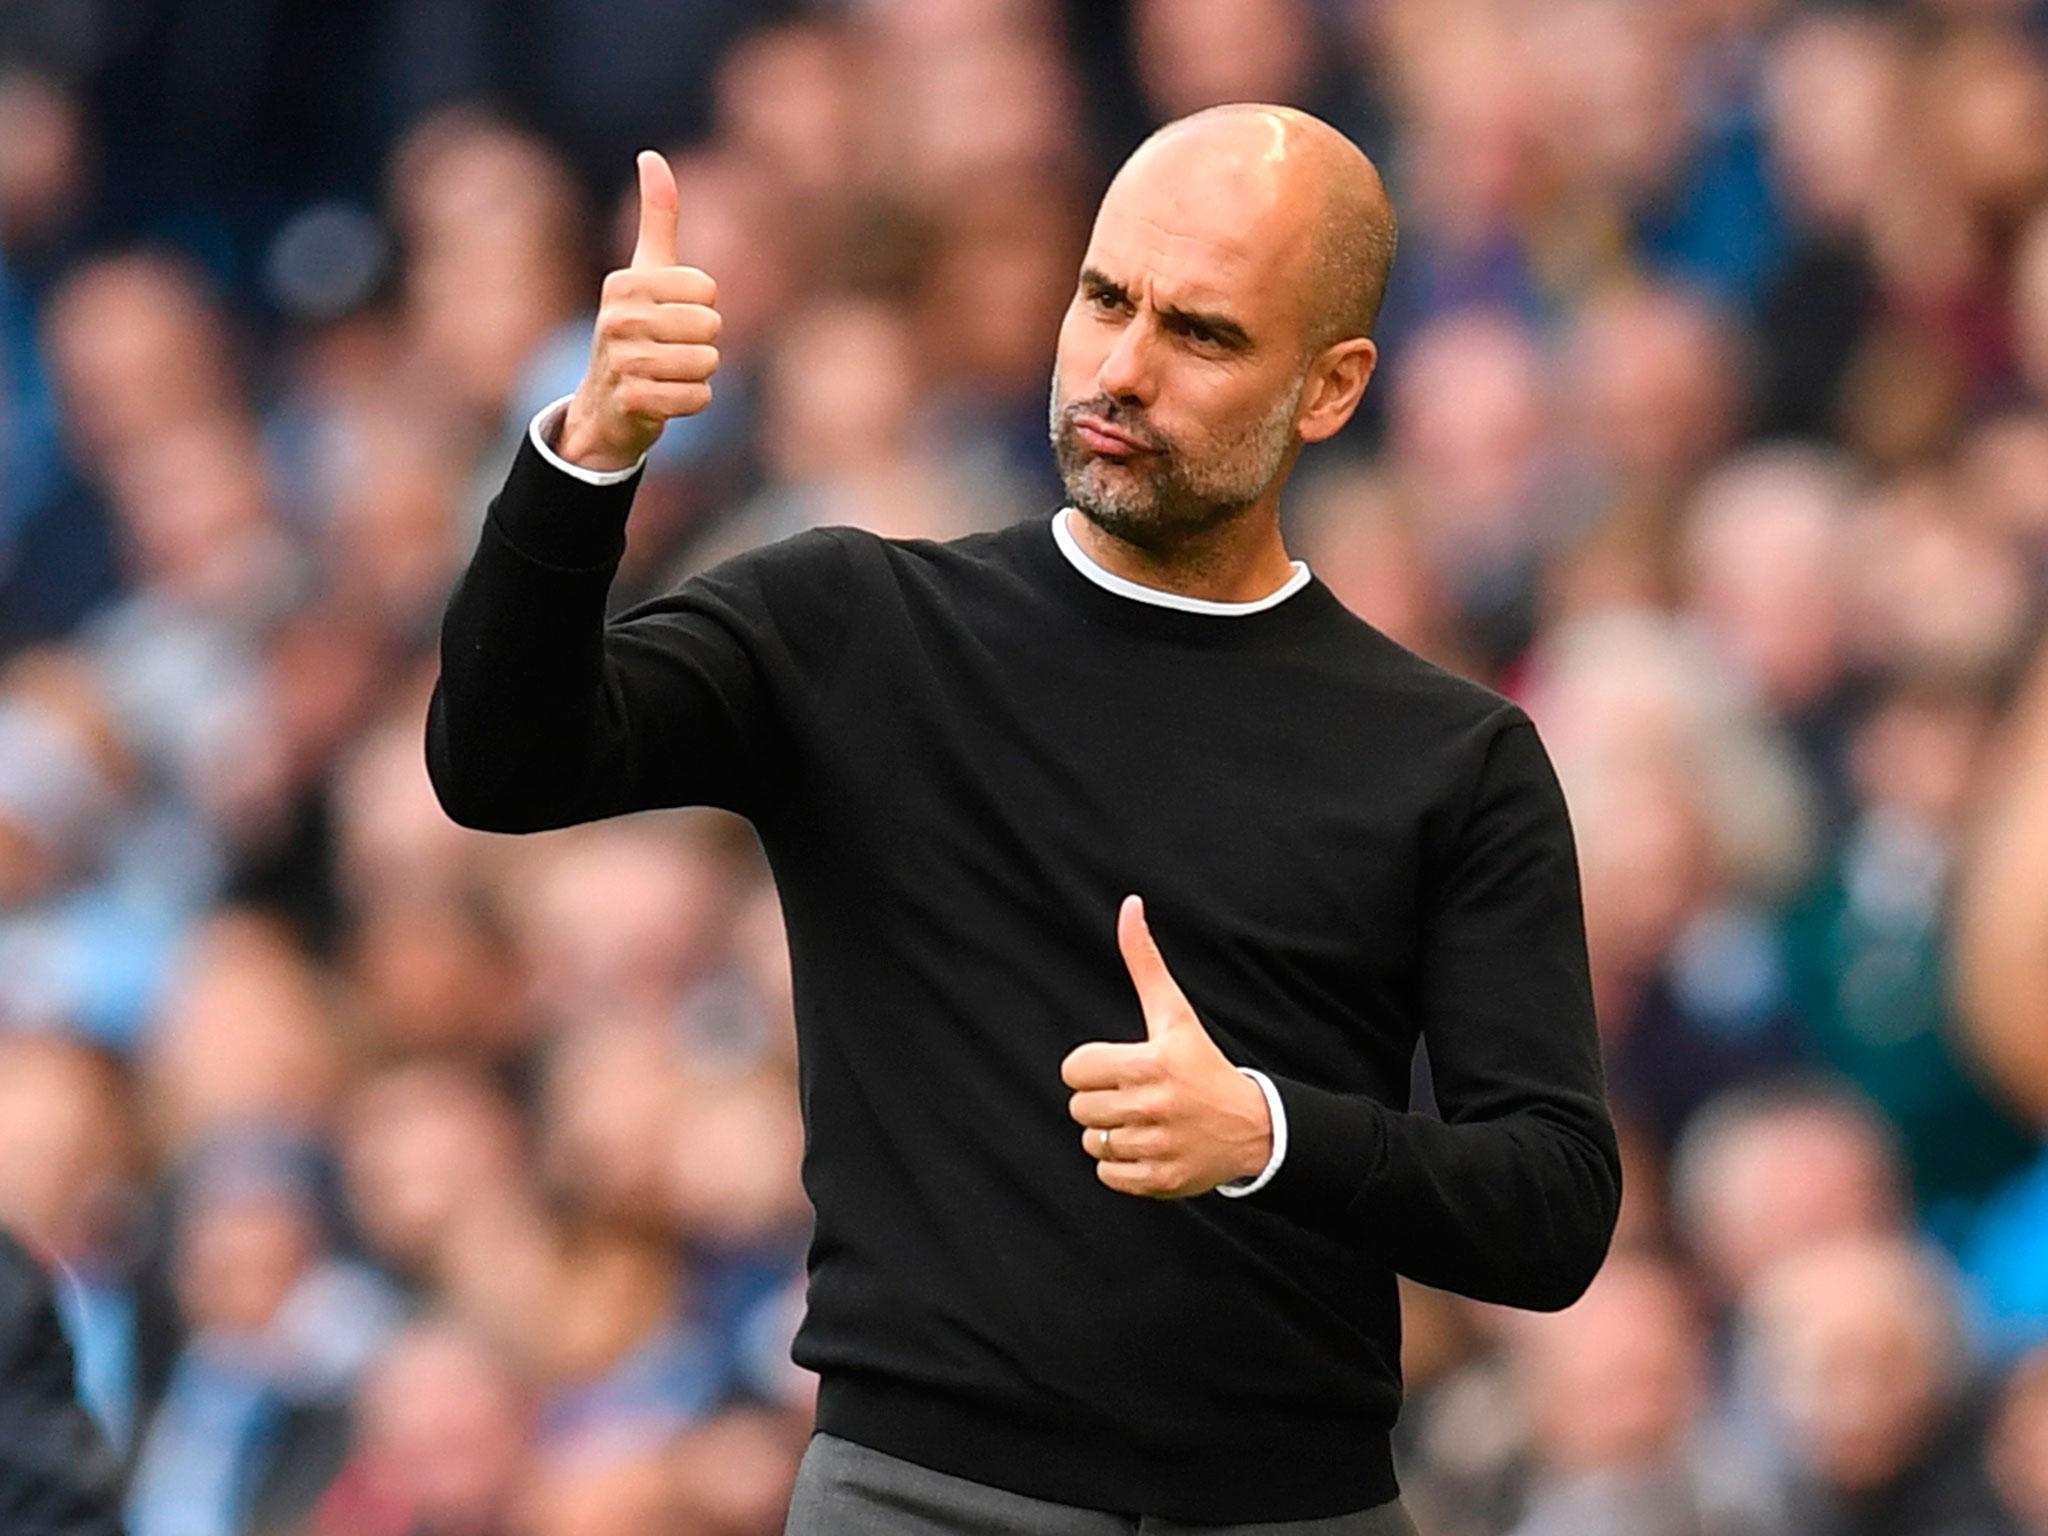 Guardiola Signs New Deal To Remain At Man City Until 2021